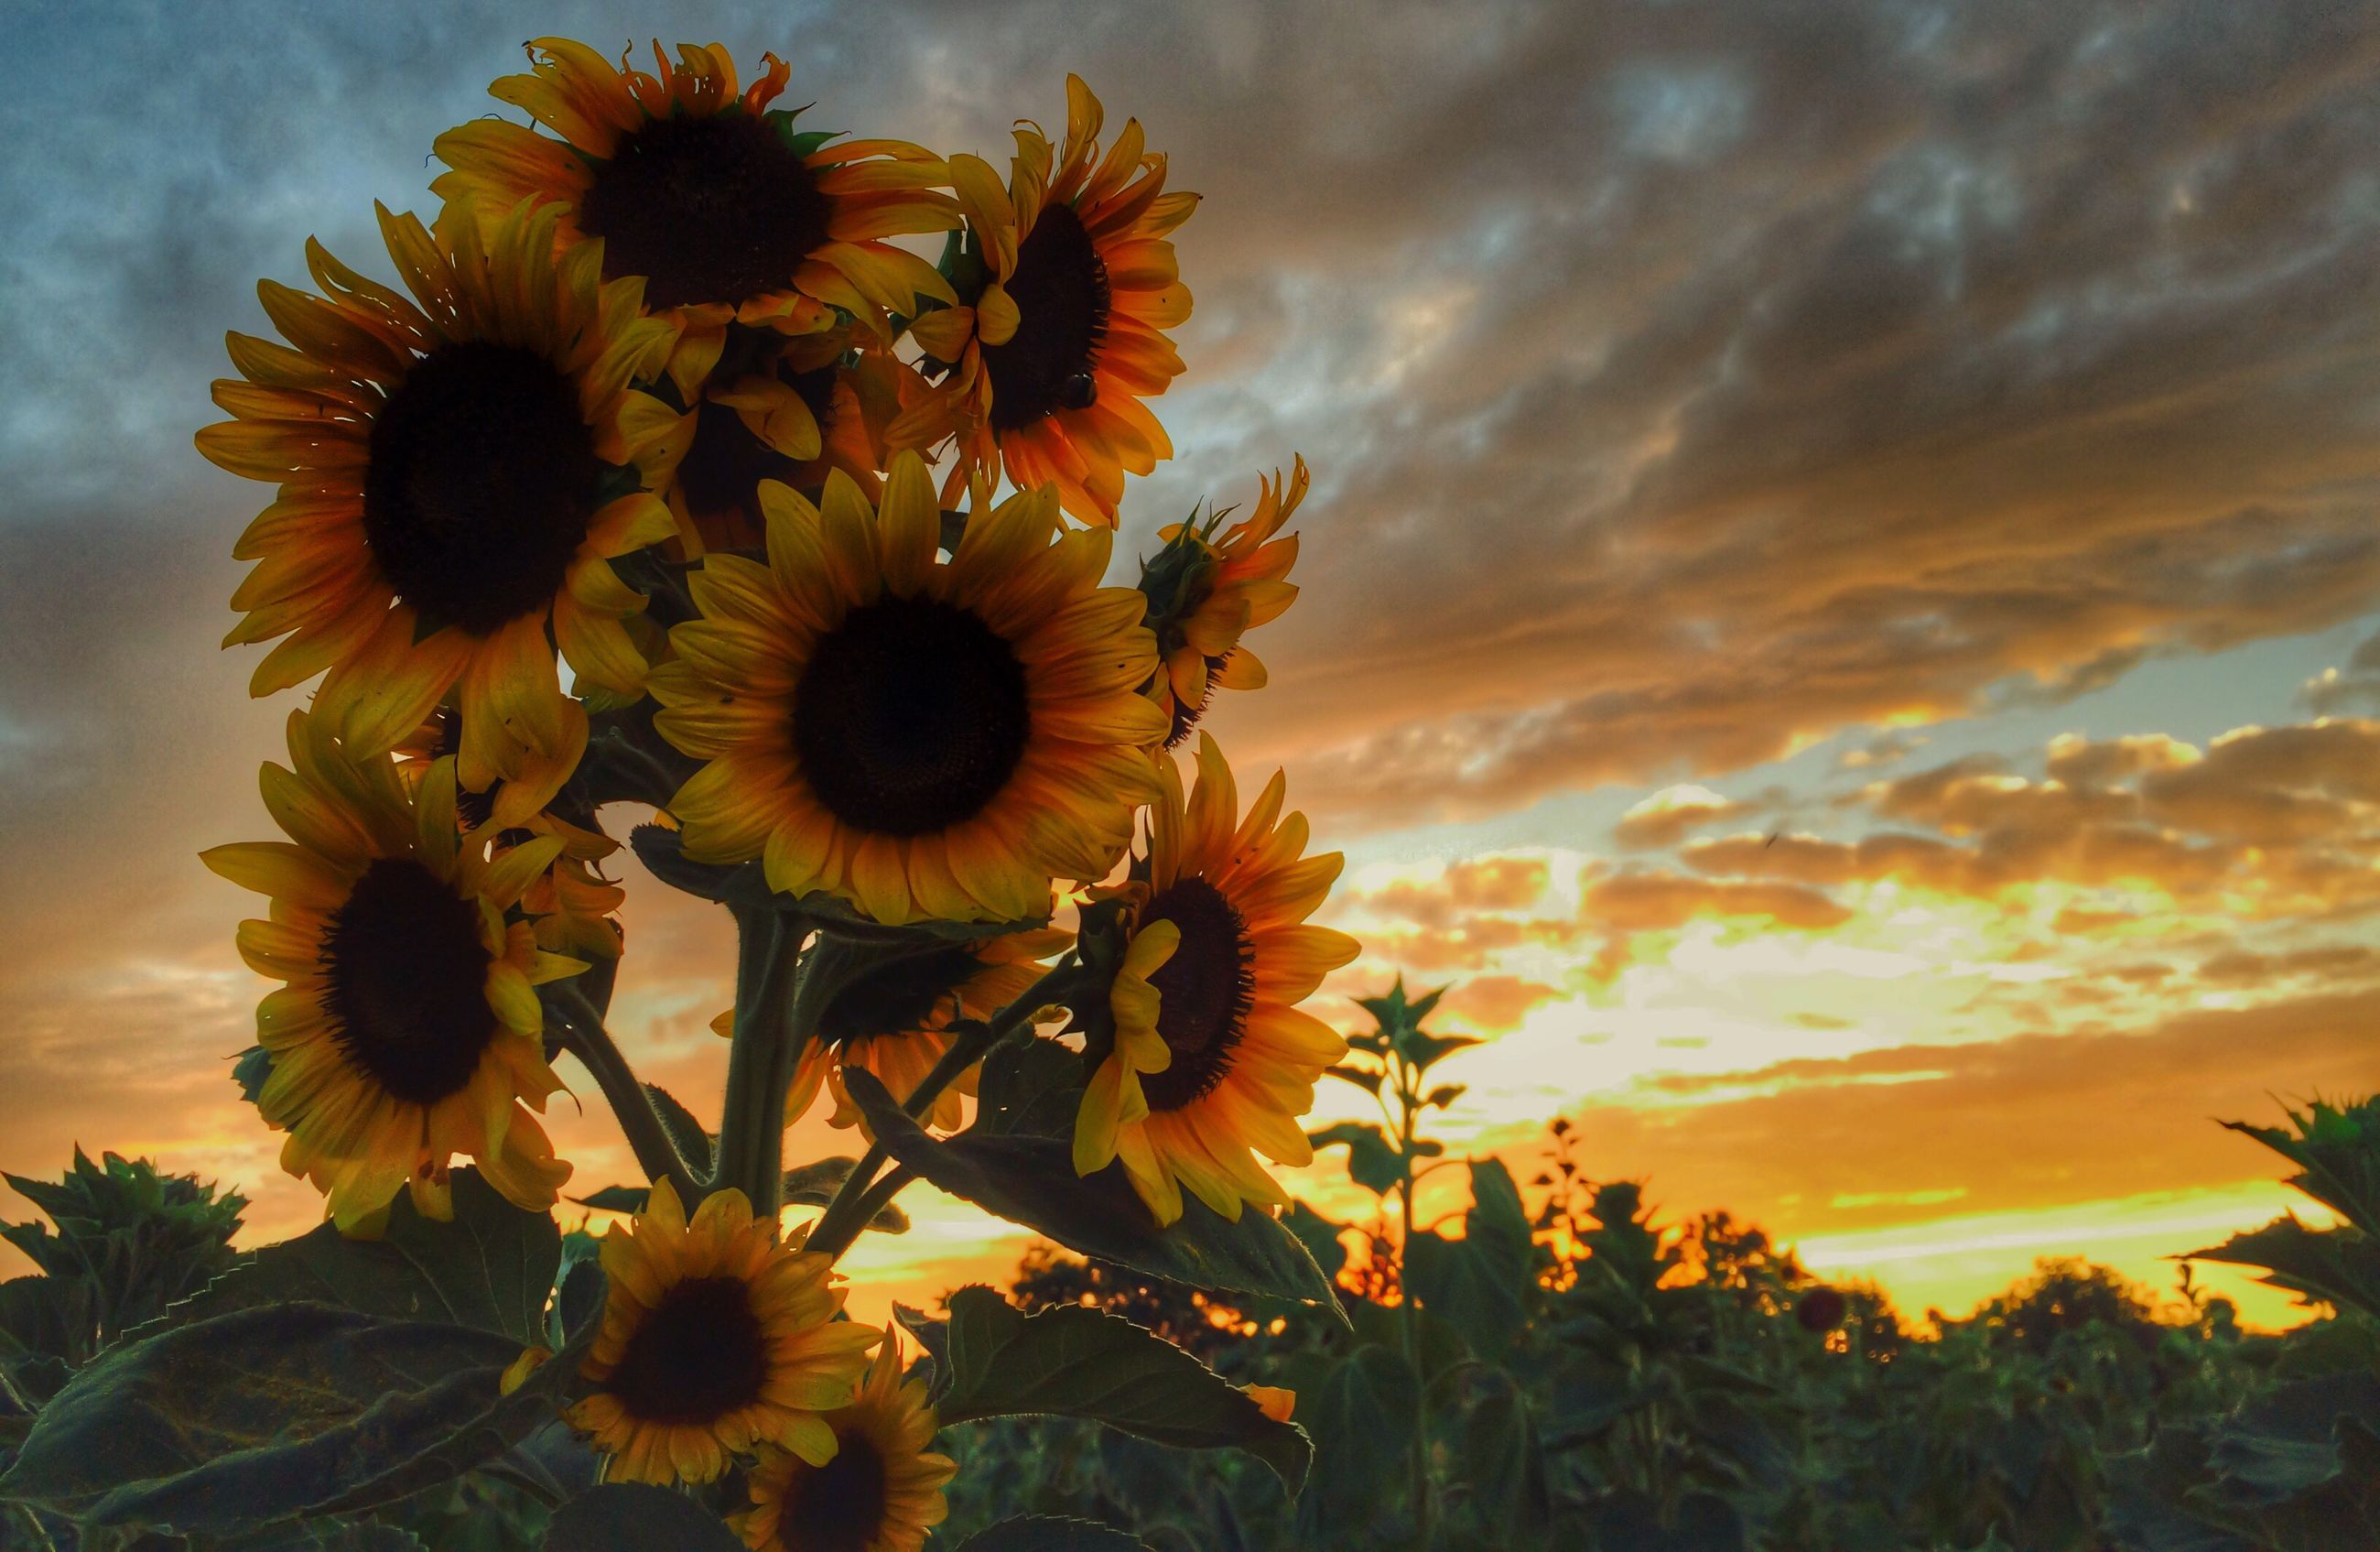 flower, freshness, fragility, petal, yellow, growth, beauty in nature, flower head, sunflower, sky, nature, blooming, plant, orange color, sunset, focus on foreground, close-up, pollen, cloud - sky, in bloom